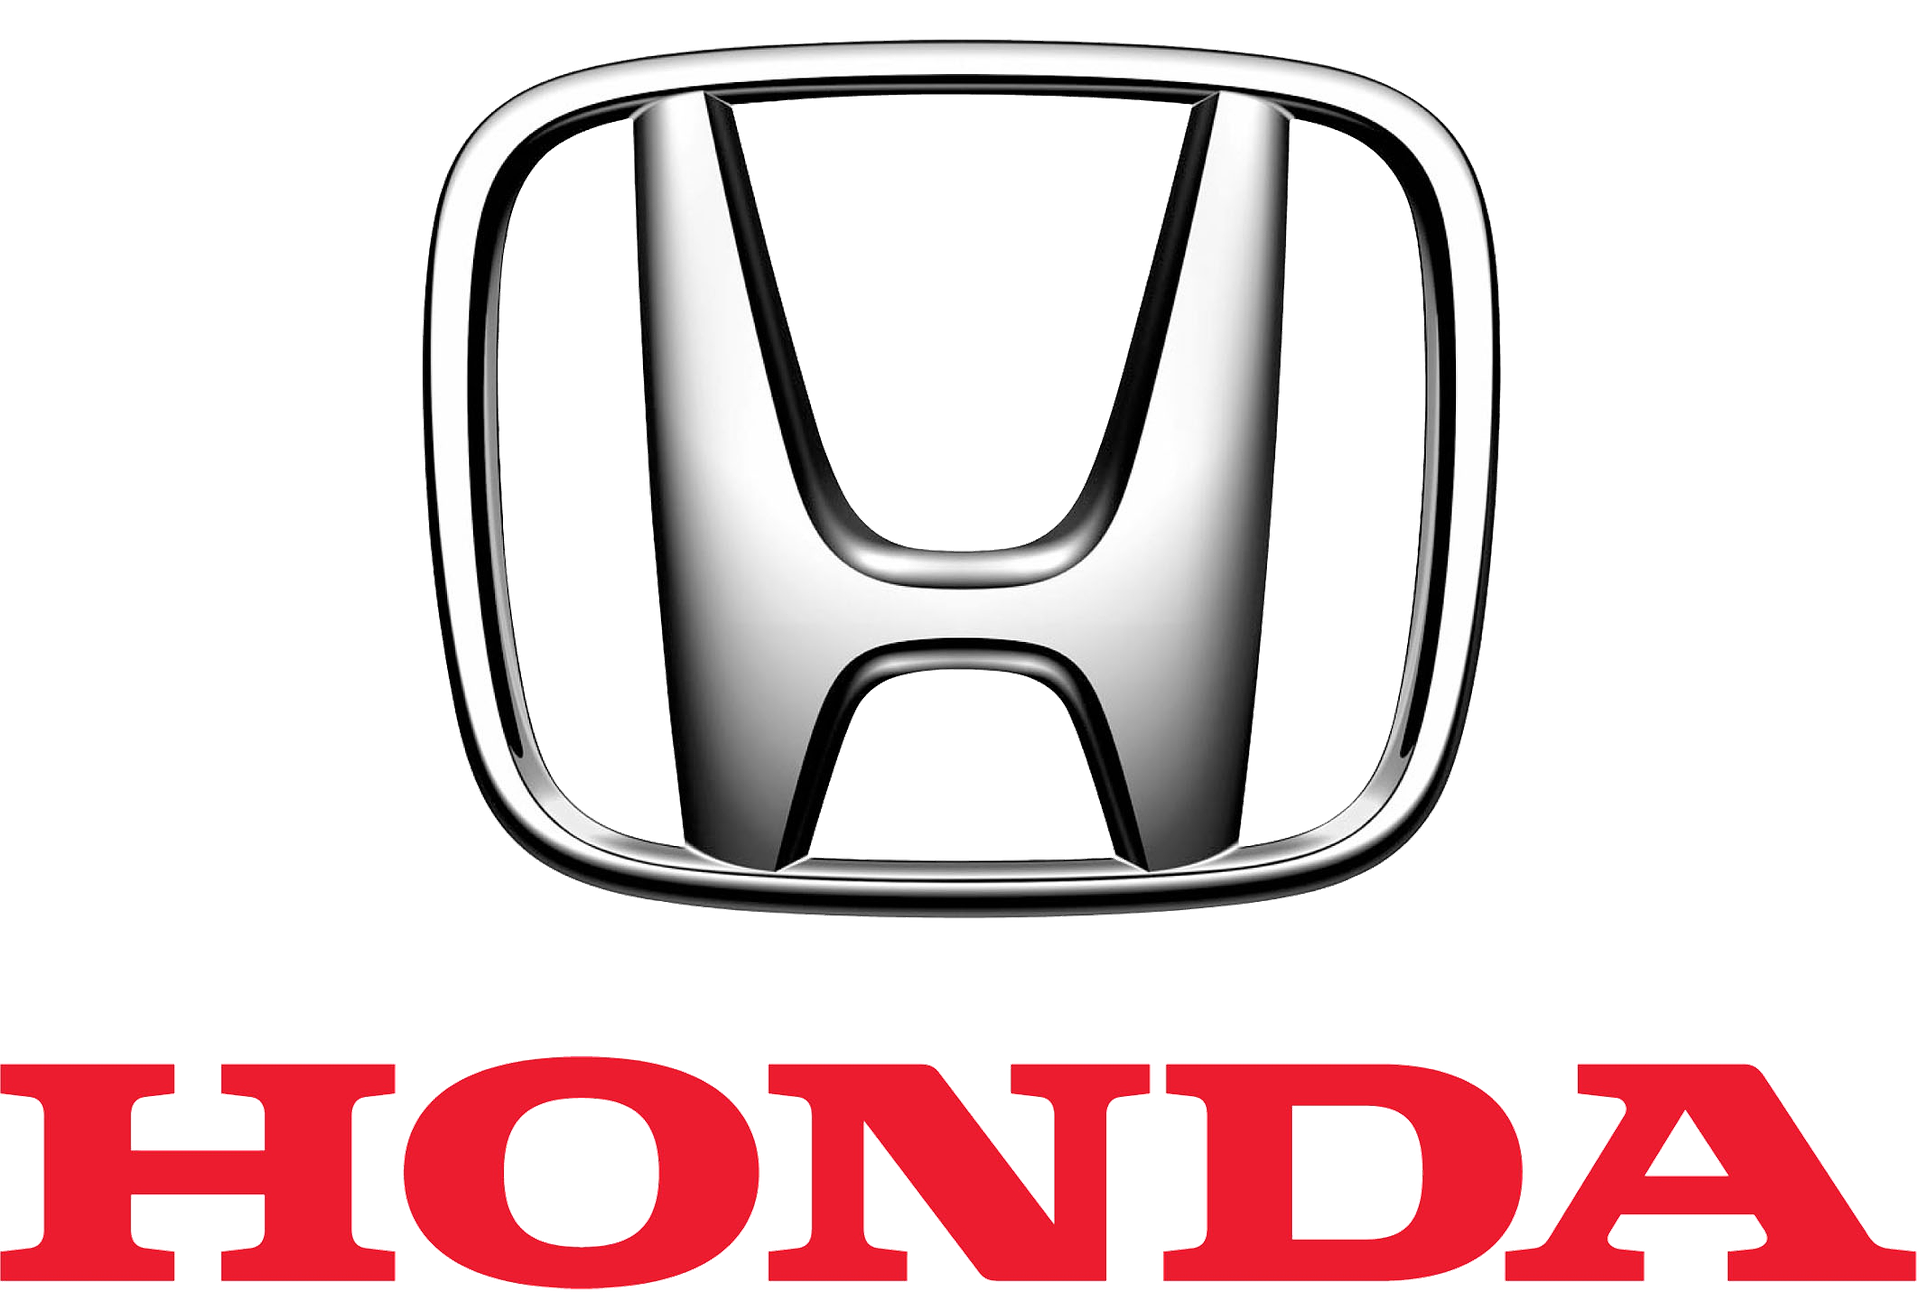 Honda Patents an Augmented Reality Pedestrian Detection System